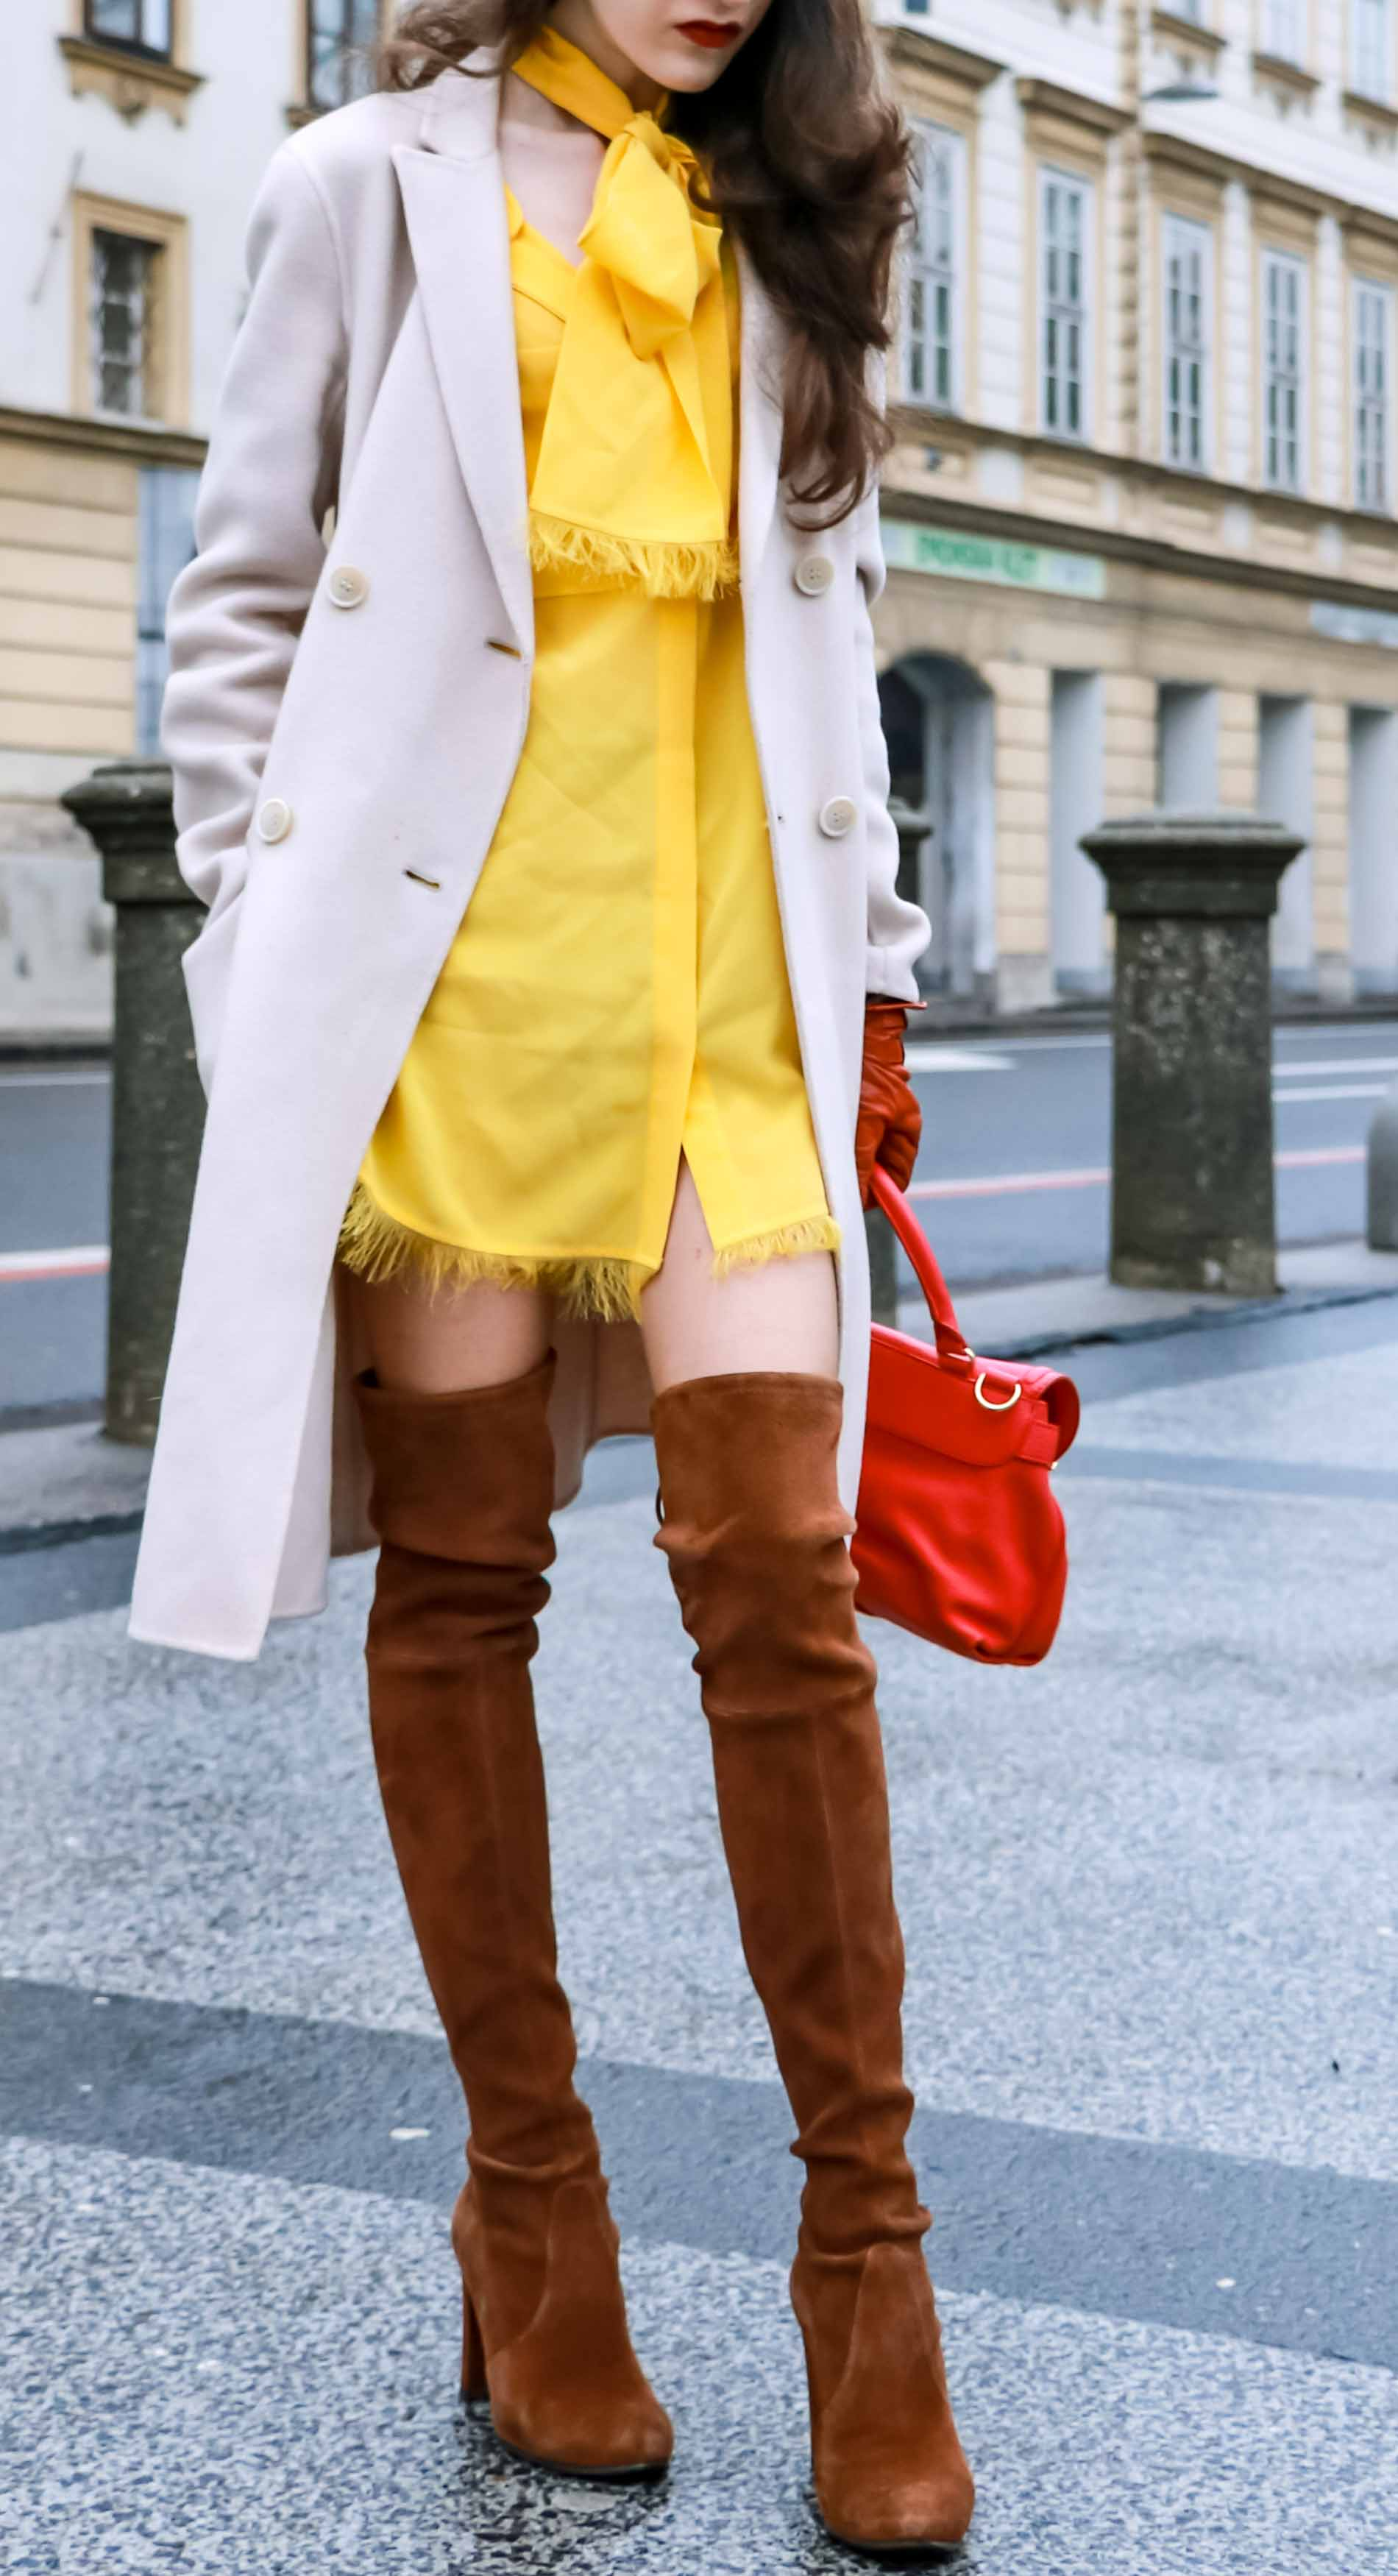 Fashion Blogger Veronika Lipar of Brunette from Wall Street dressed in the IT dress of spring summer 2018, the yellow dress from Escada, off-white, pastel double-breasted coat from Weekend Maxmara, pink top handle bag from See by Chloé, brown Stuart Weitzman over the knee boots, and faux fur headband at the end of winter